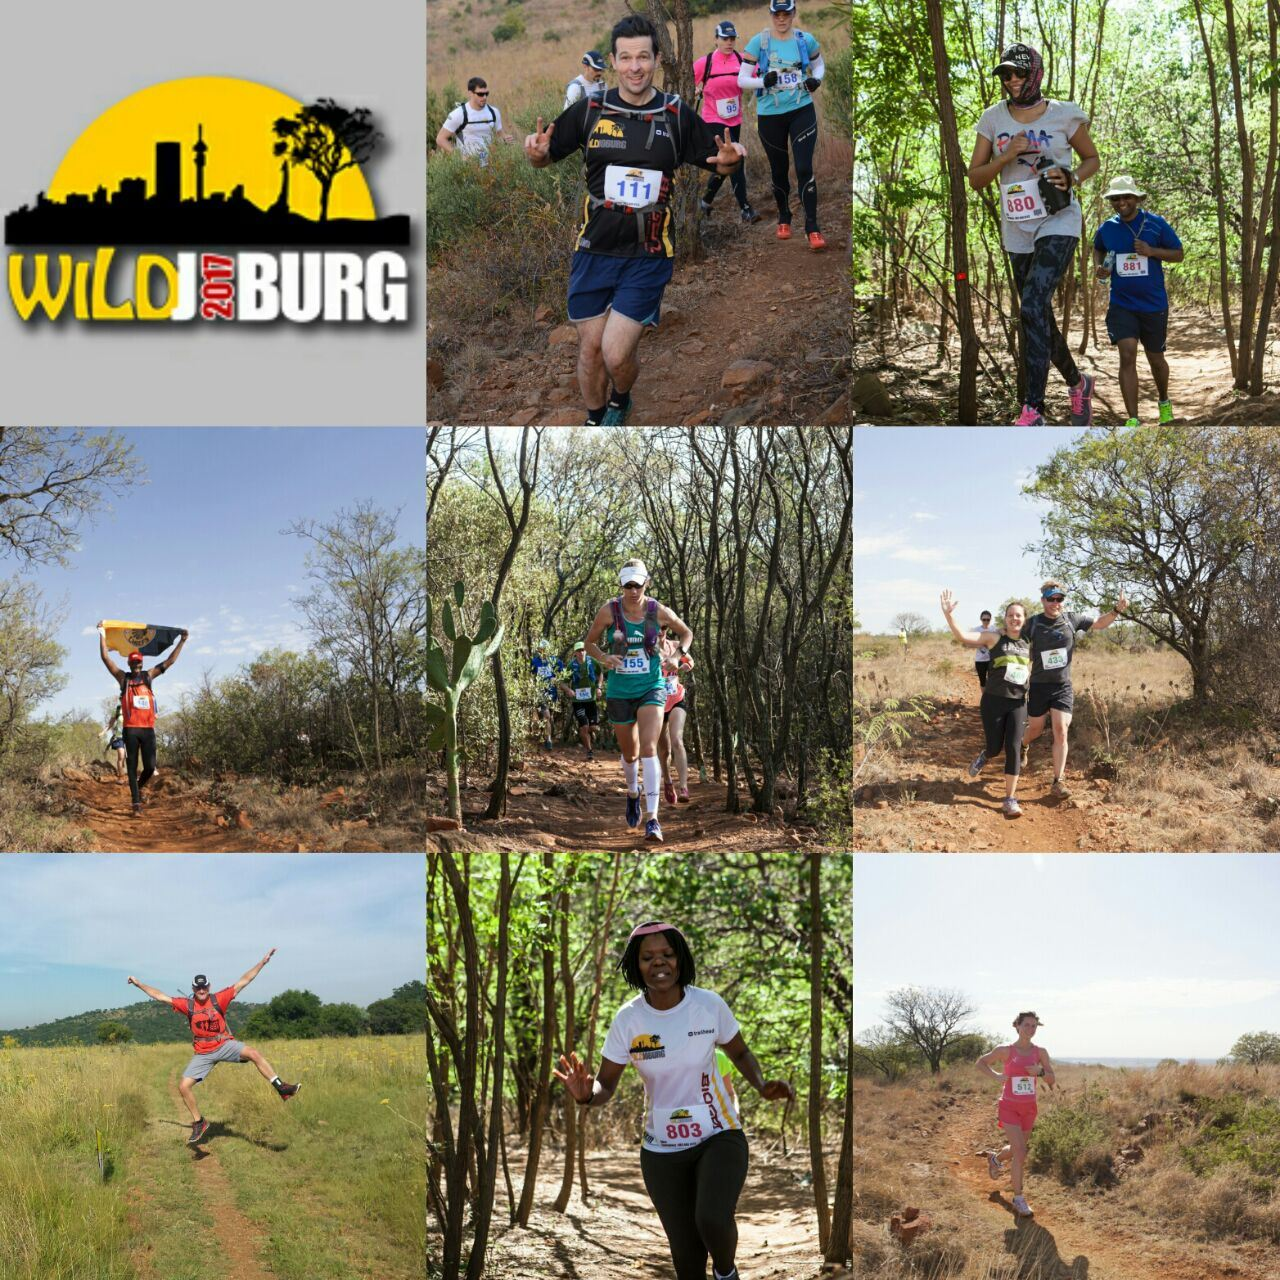 Wildjoburg Collage